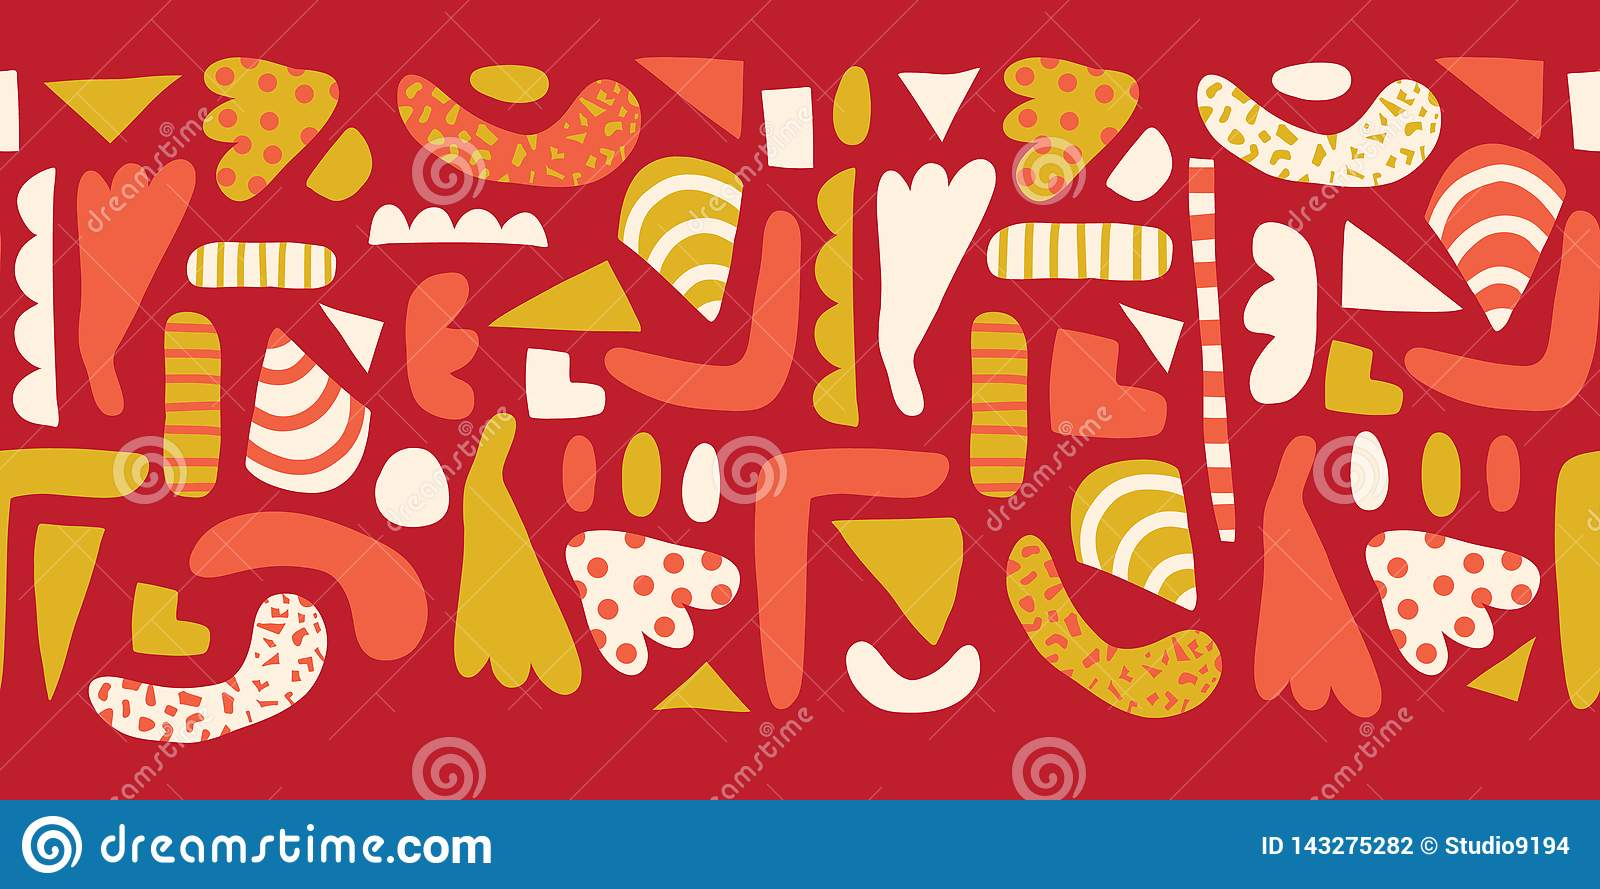 Doodle shapes Seamless horizontal border vector. Modern abstract pattern with simple elements red, white, yellow, pink